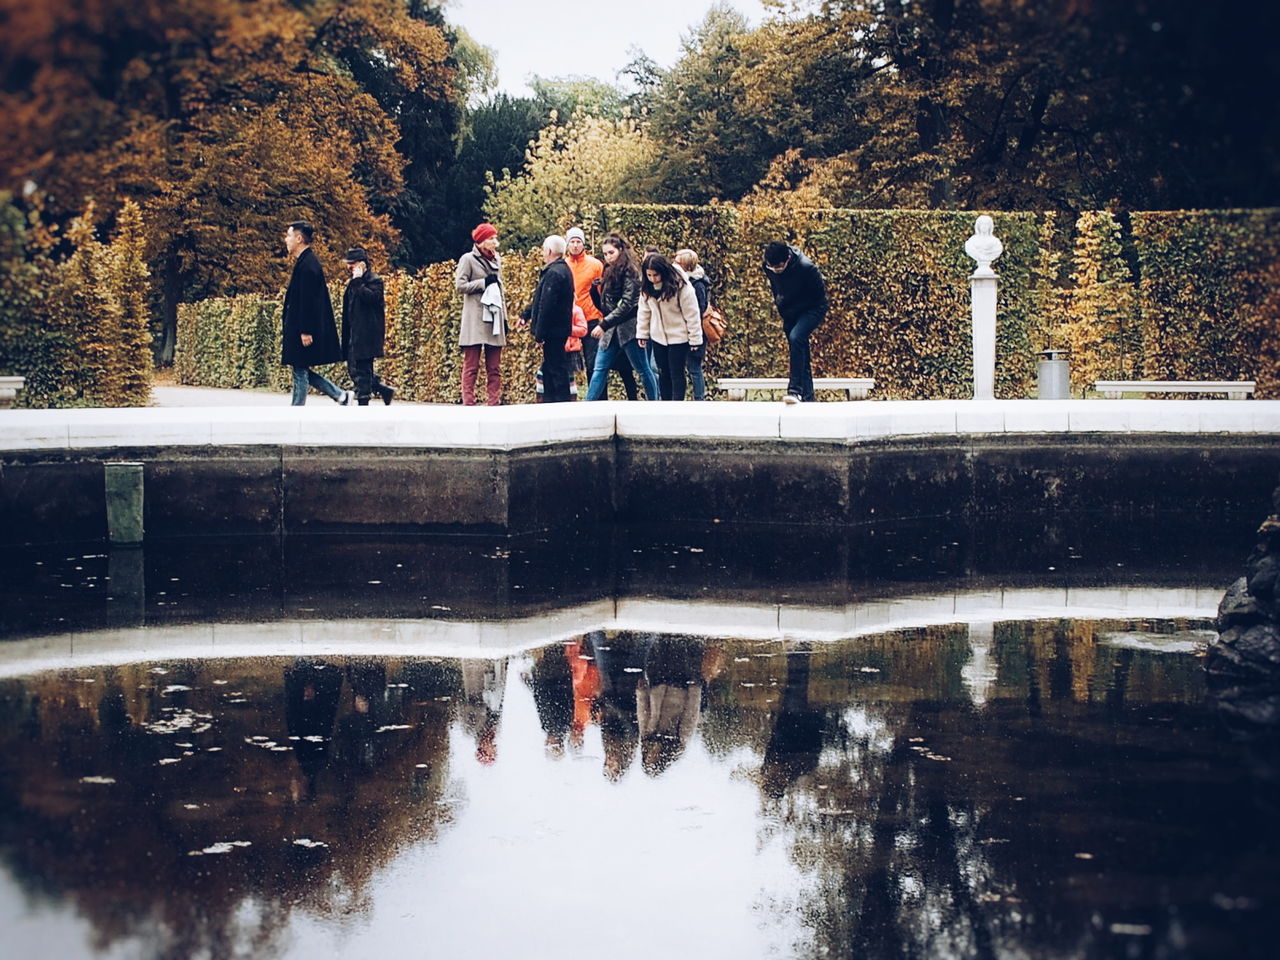 Down on the upside... Real People Lifestyles Reflection Leisure Activity Water Adult Outdoors Tree Adults Only Men Day People Friendship Women Togetherness Nature Autumn Autumn Colors Water Reflections Tourism Tourists Happy Cheerful Life Streetphography Peoplephotography